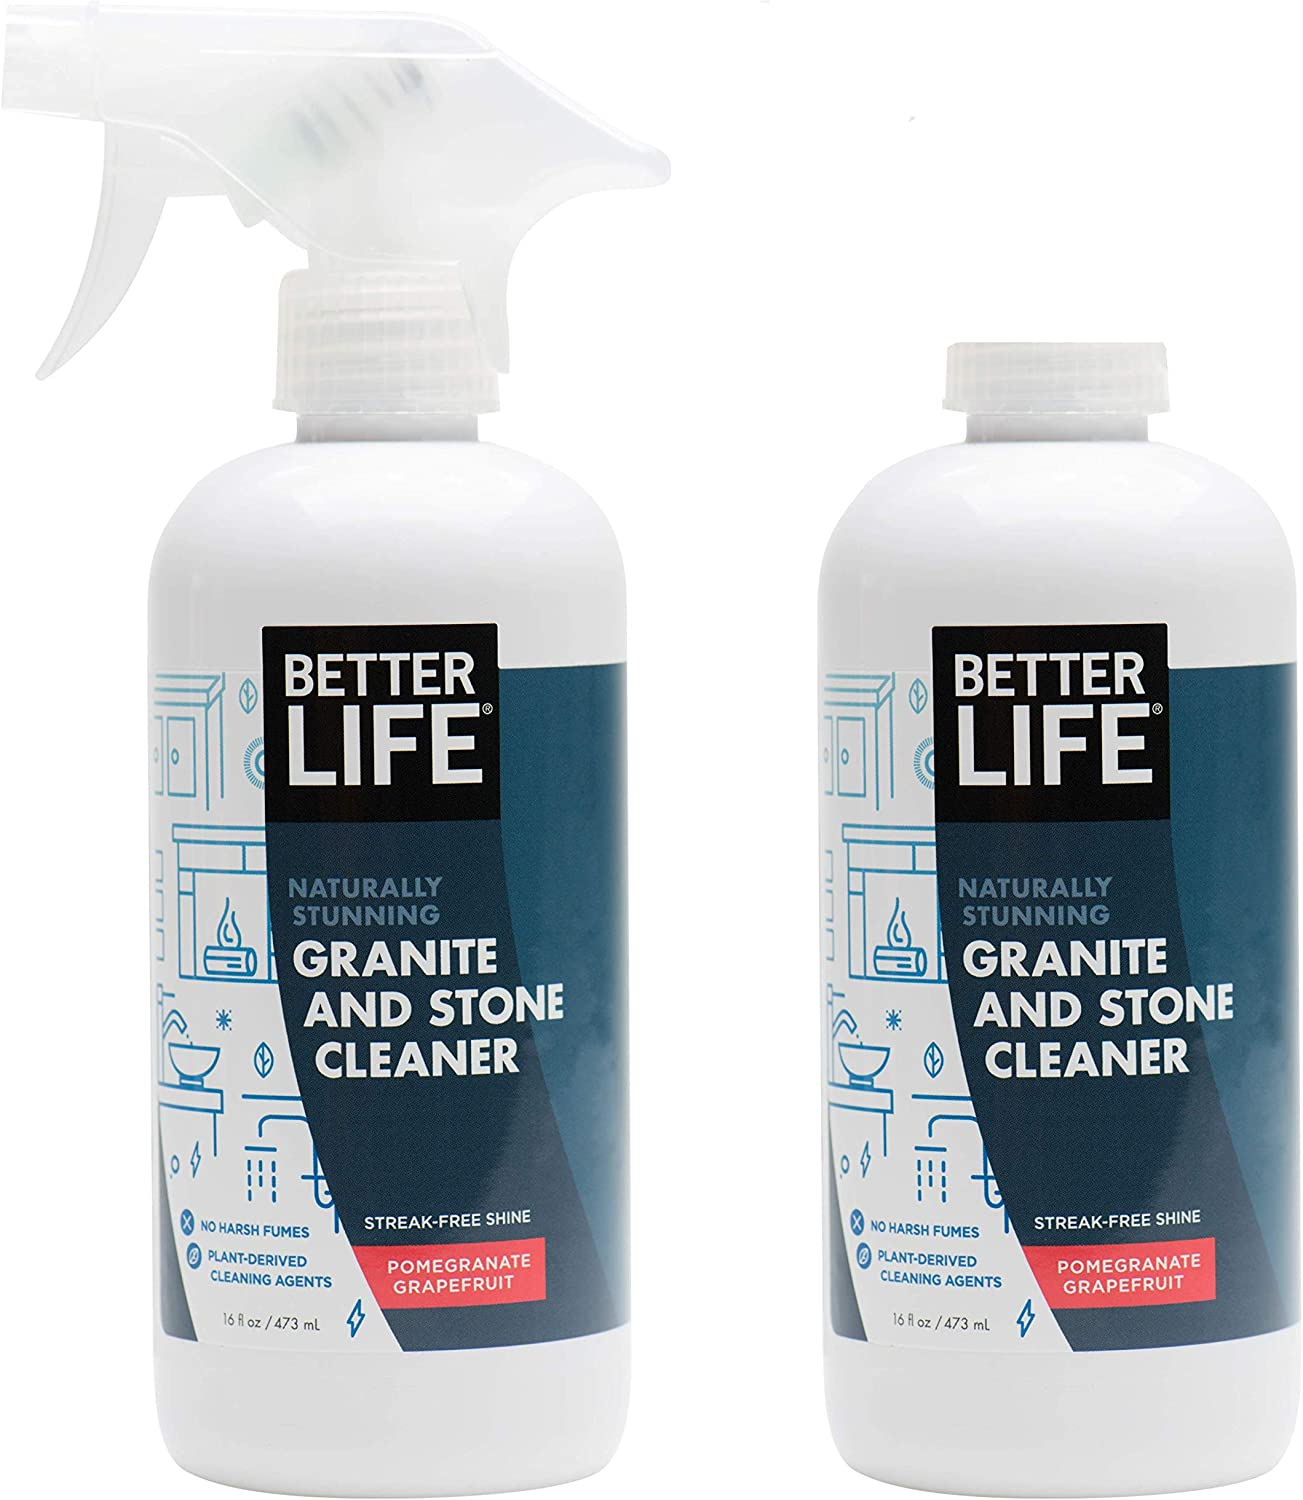 Better Life Natural Granite and Stone Cleaner, Pomegranate Grapefruit, 16 Ounces (Pack of 2)